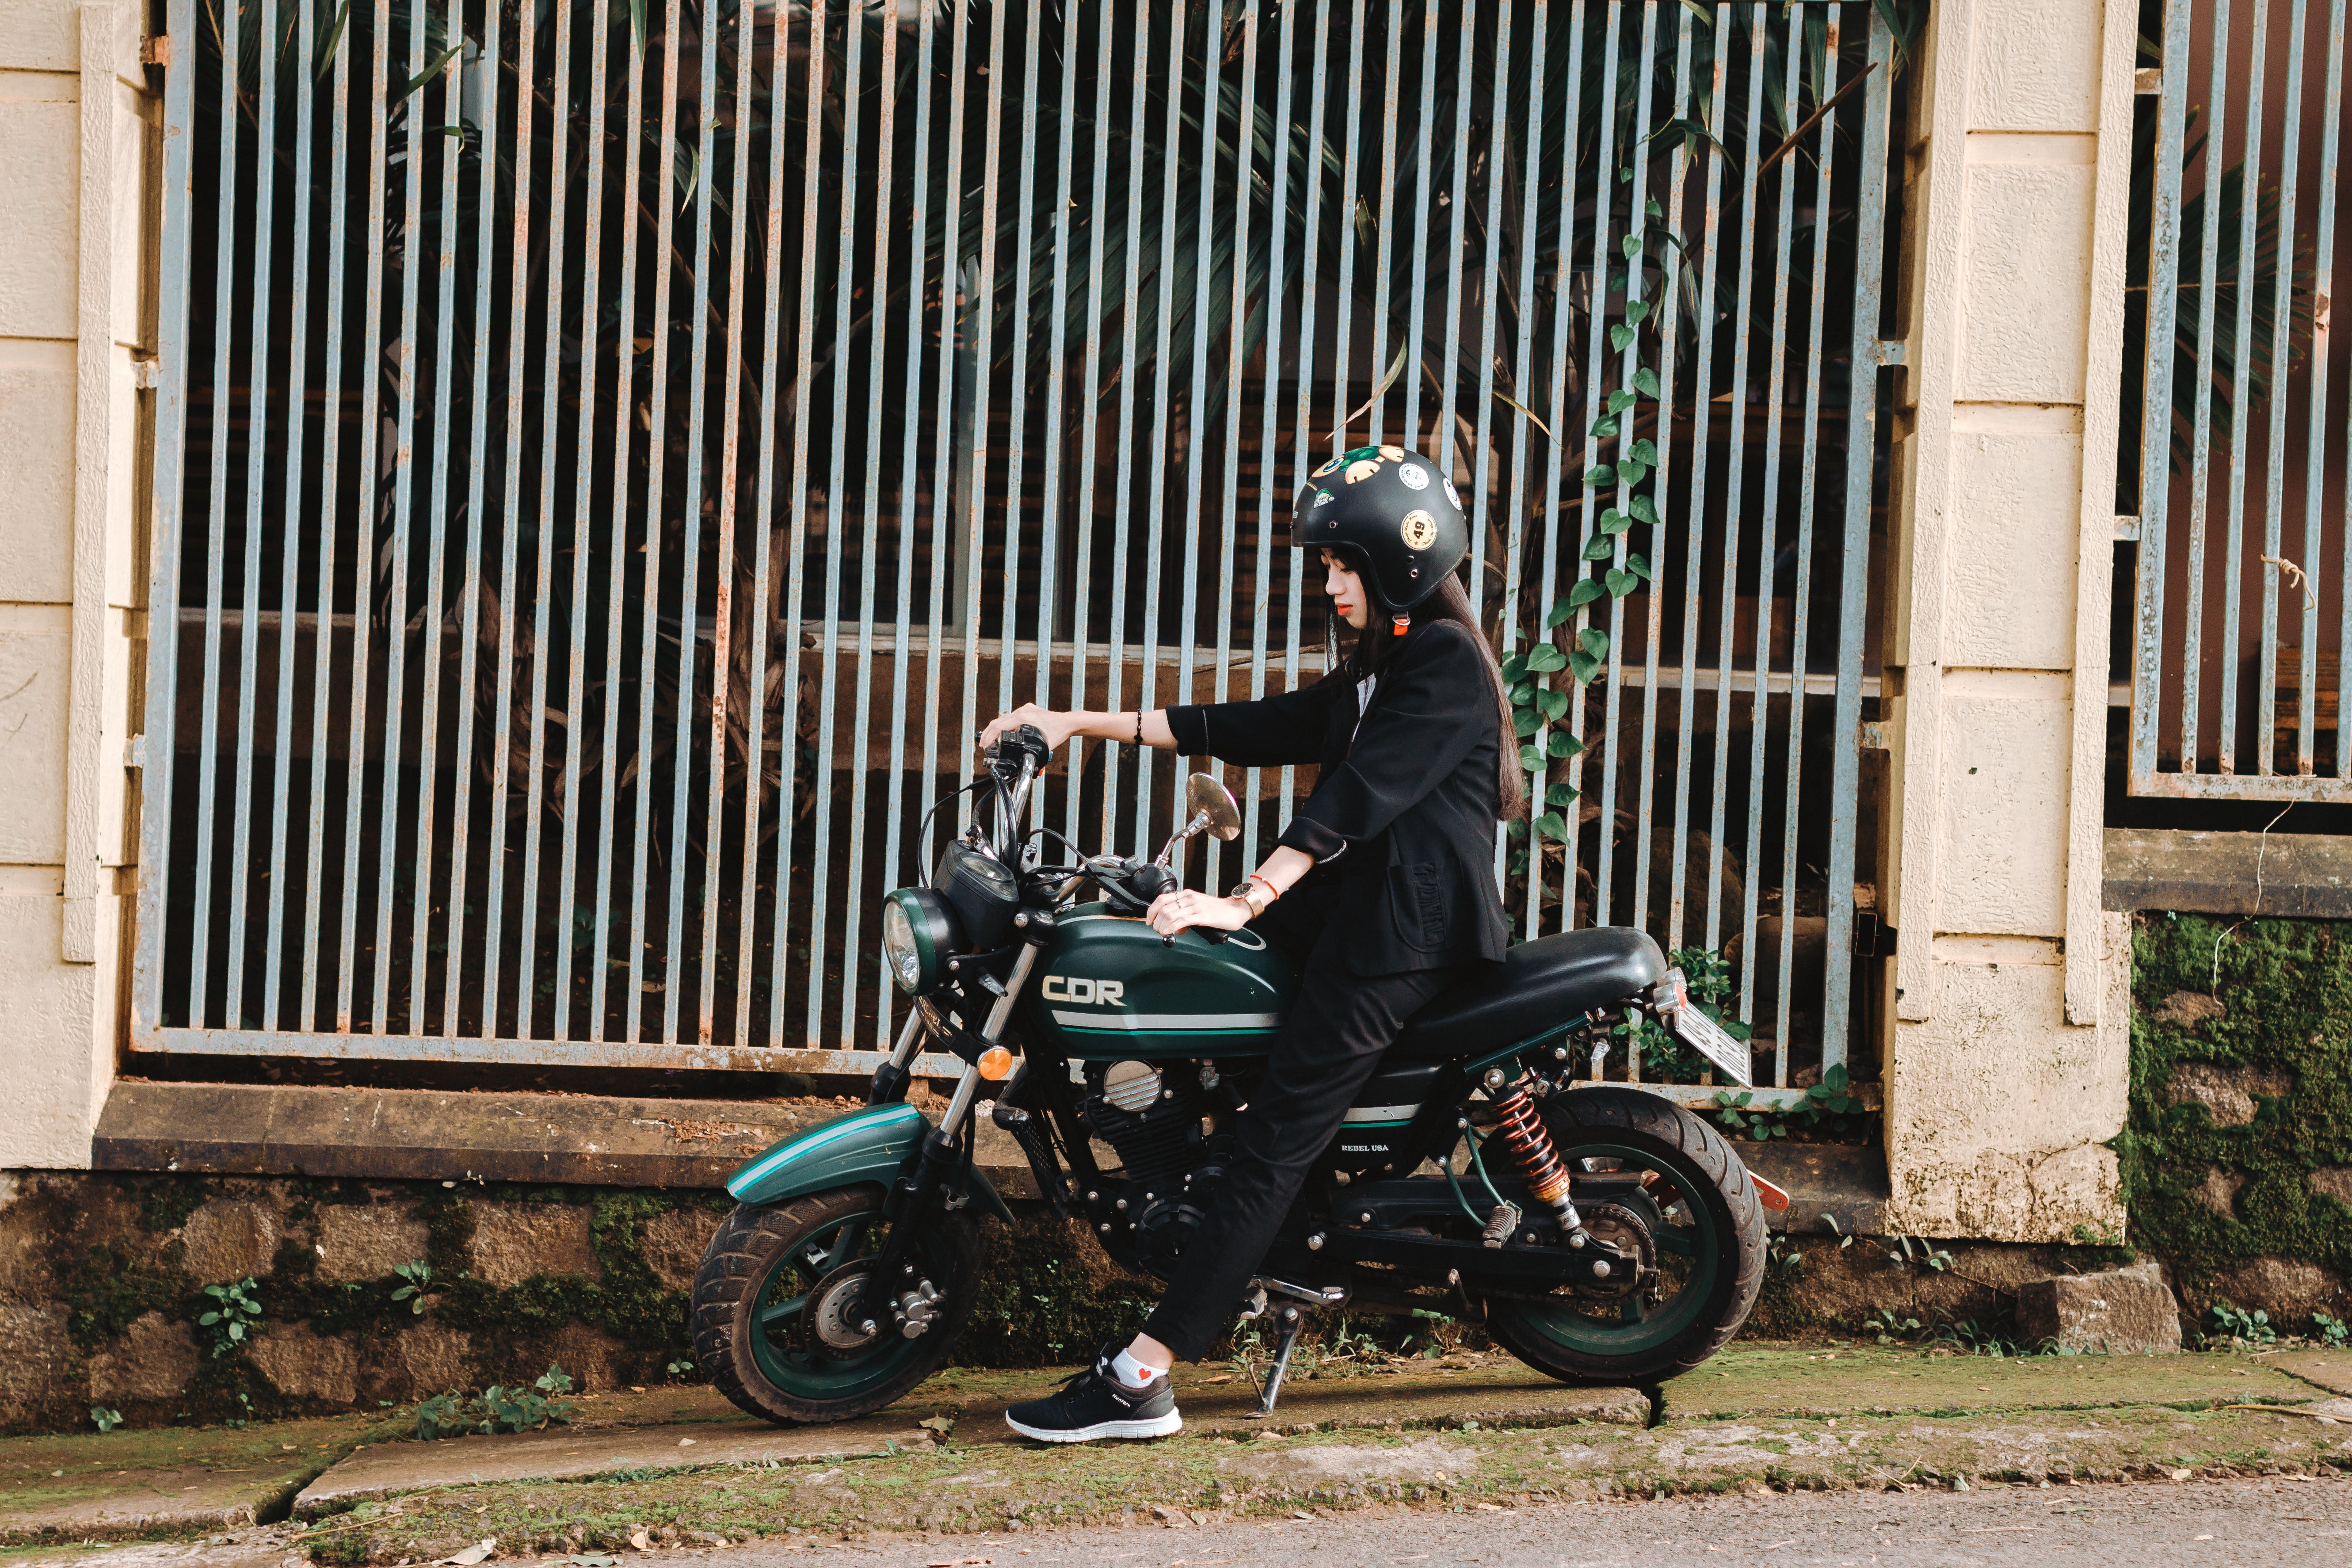 Woman Riding on Green Motorcycle